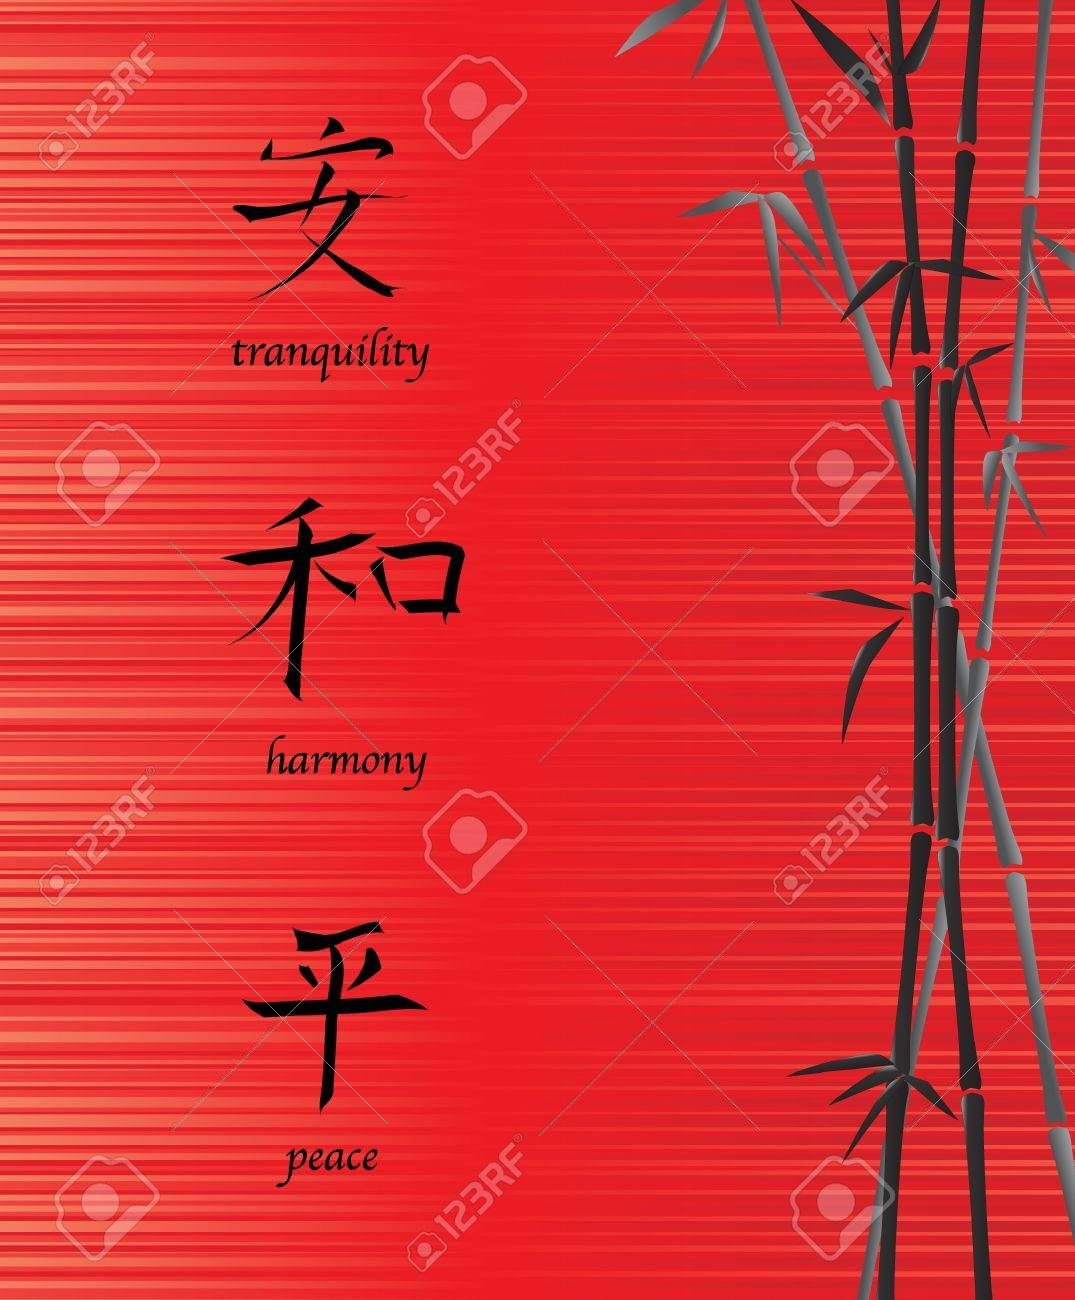 A Vector Illustration Of Chinese Symbols For Tranquility Harmony